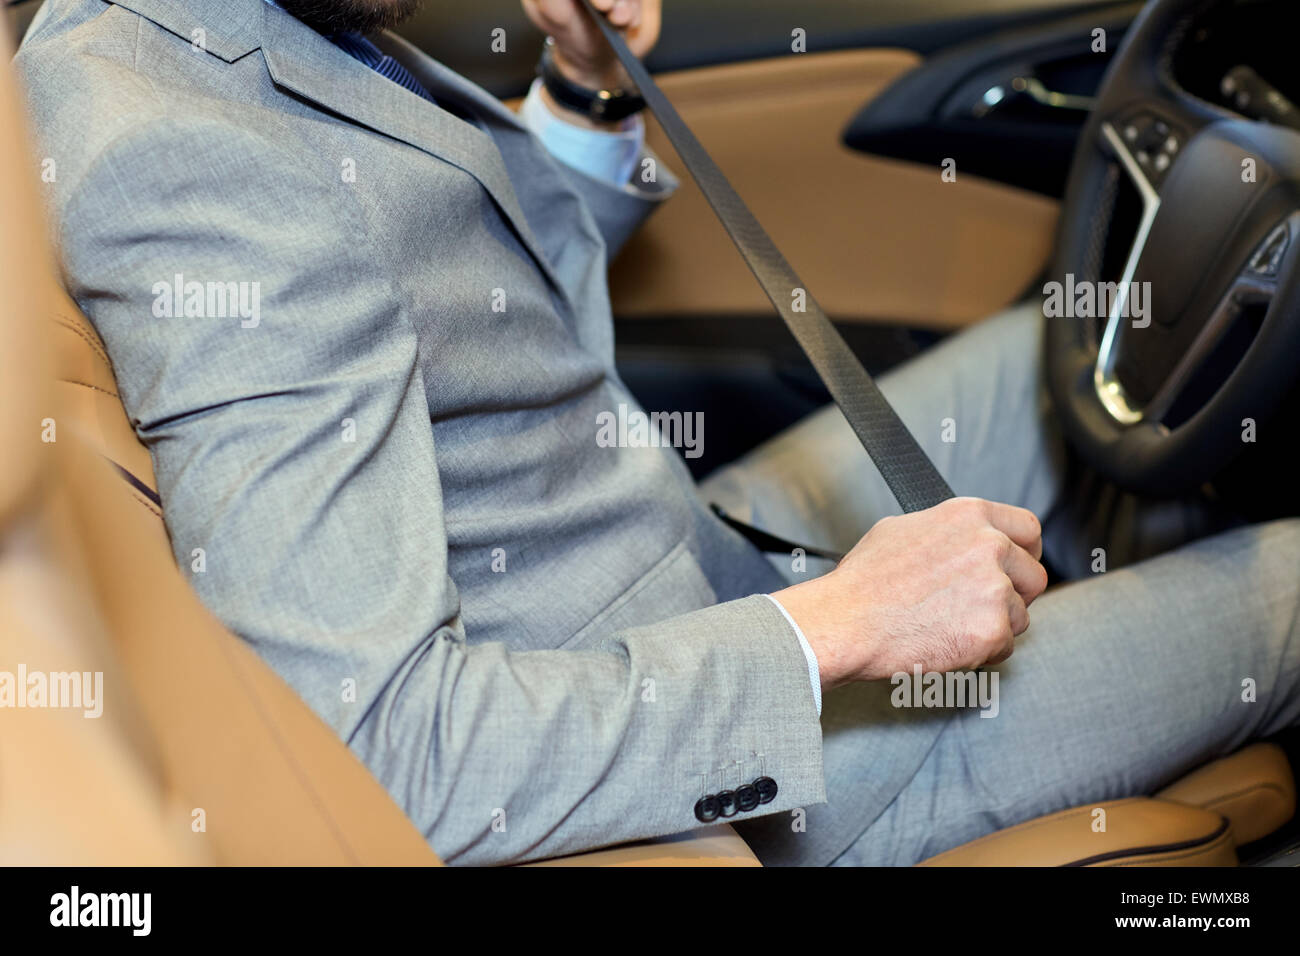 close up of man fastening seat safety belt in car - Stock Image